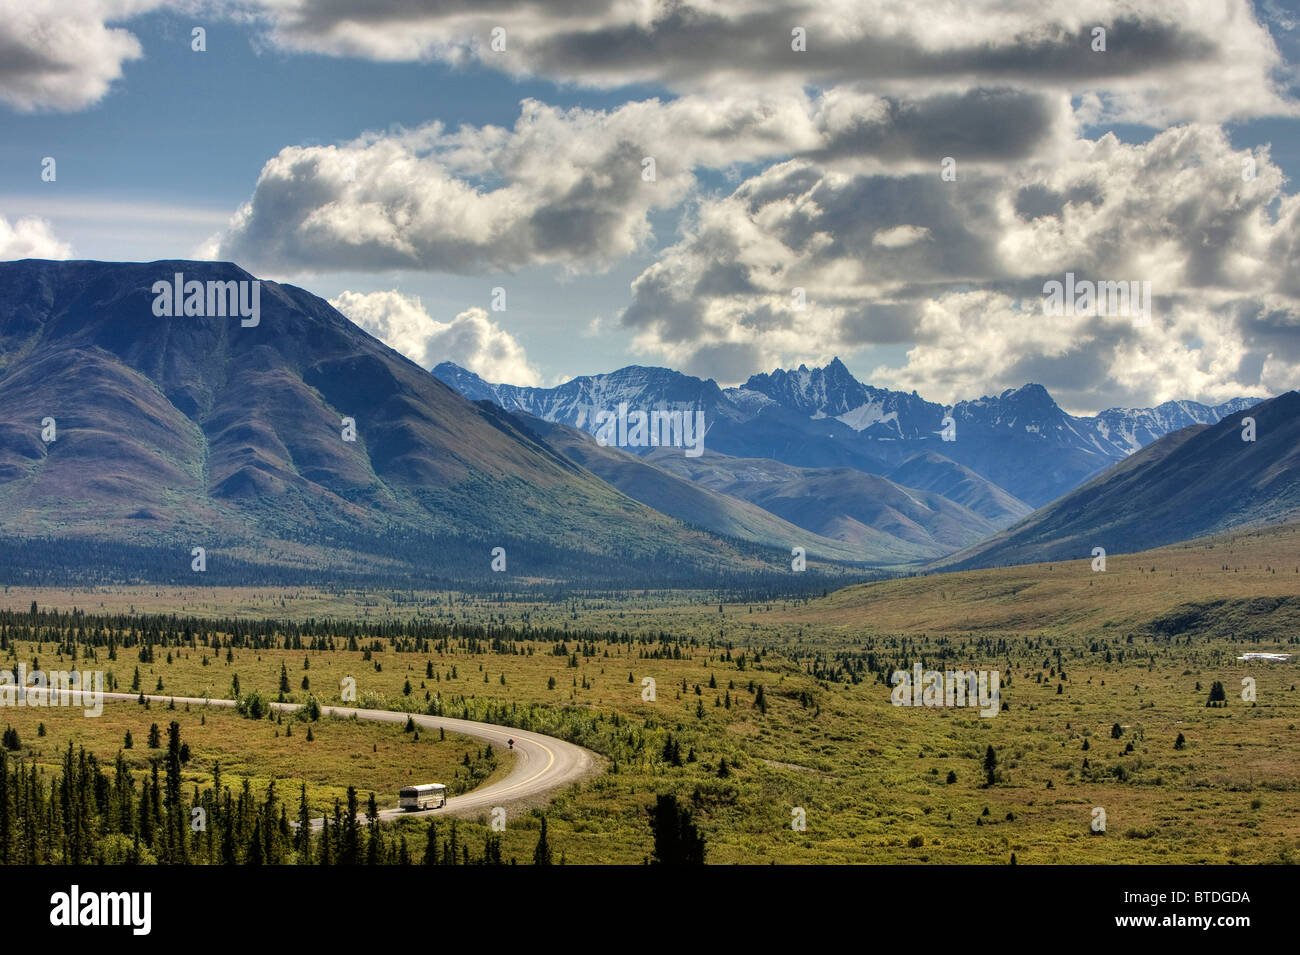 View of the park road and the before Savage River Denali National Park Interior Alaska Summer HDR image. - Stock Image